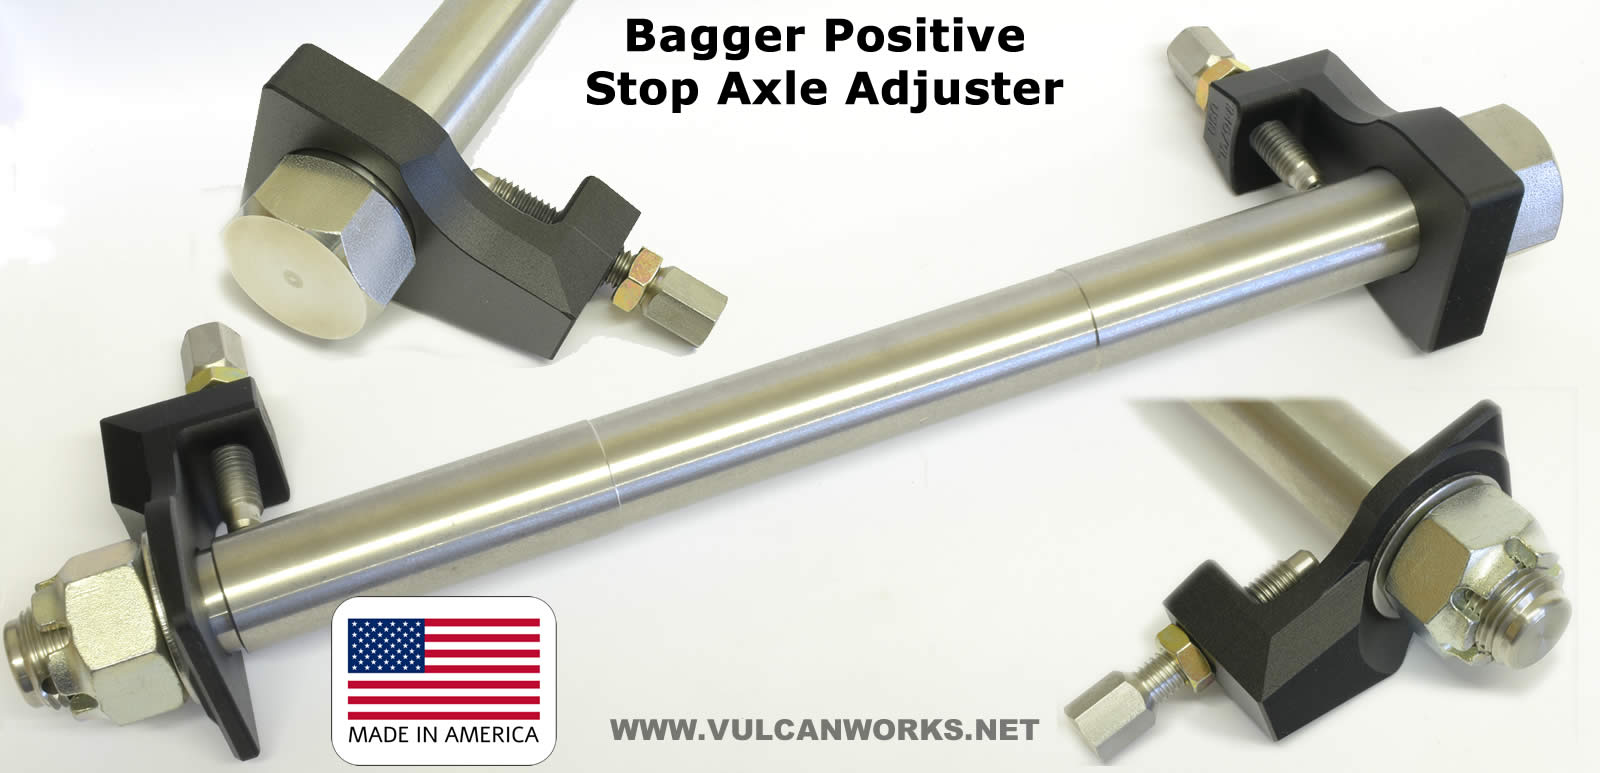 Positive Stop Axle Adjuster for 2002-up Touring Harleys